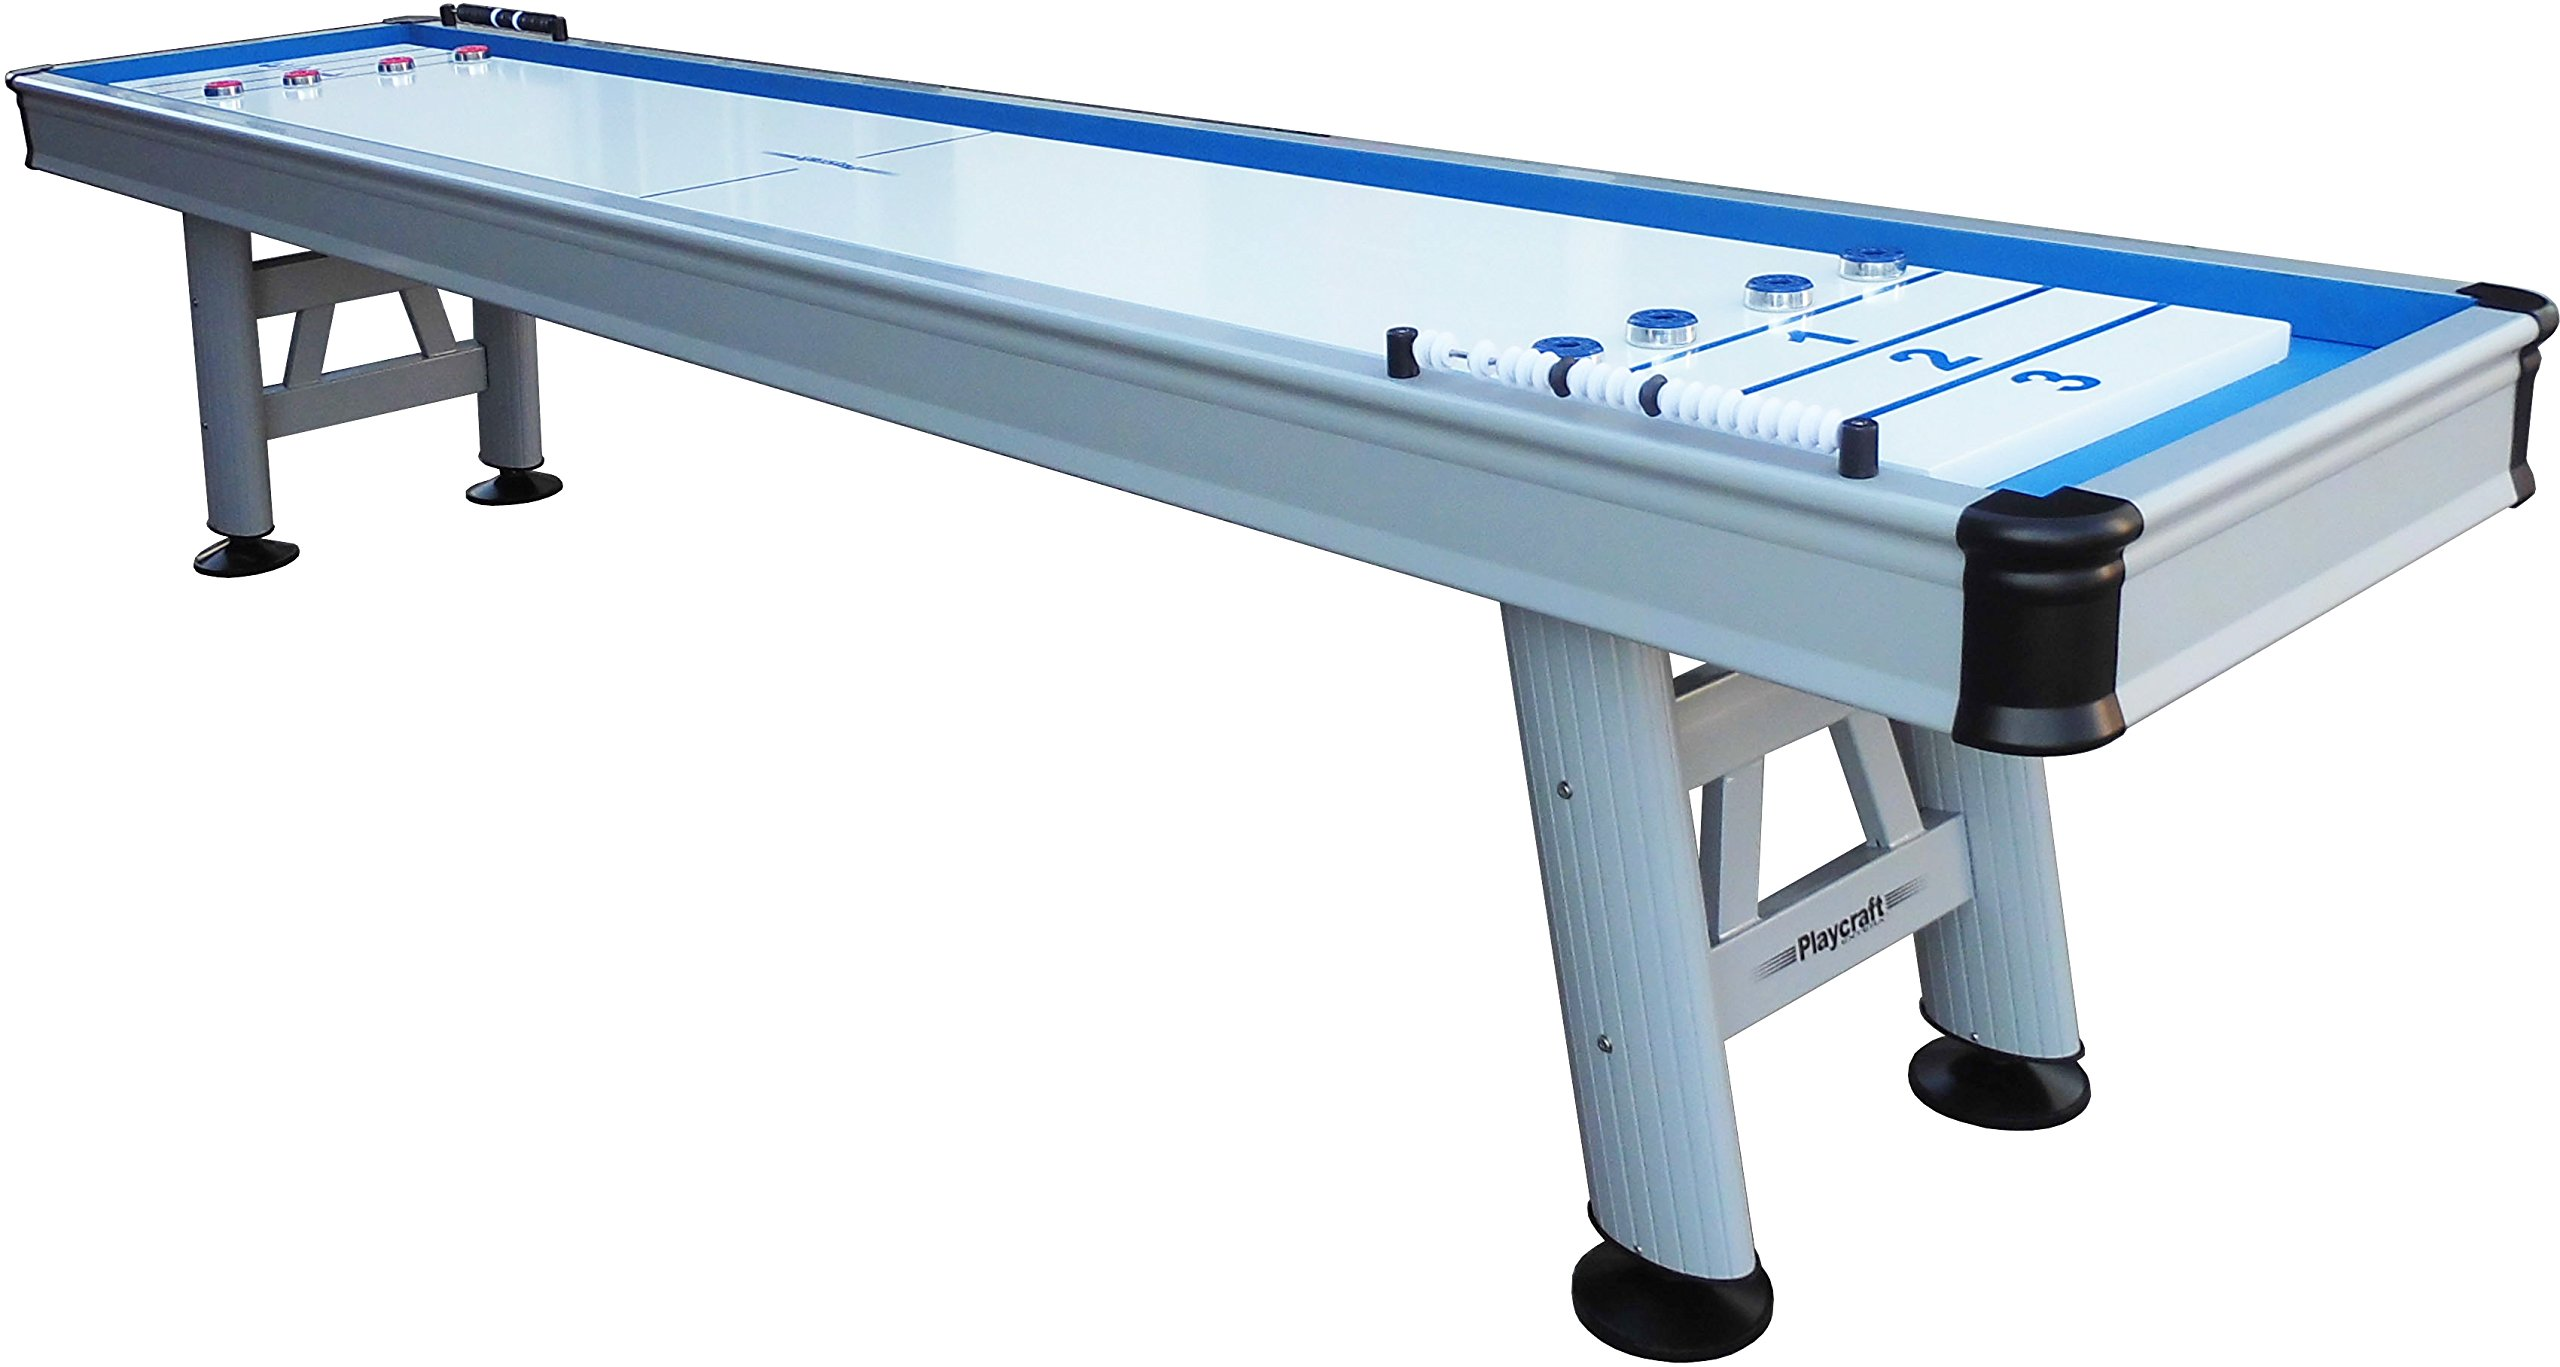 Playcraft Extera 9' Outdoor Shuffleboard Table with 15'' Wide Playfield by Playcraft